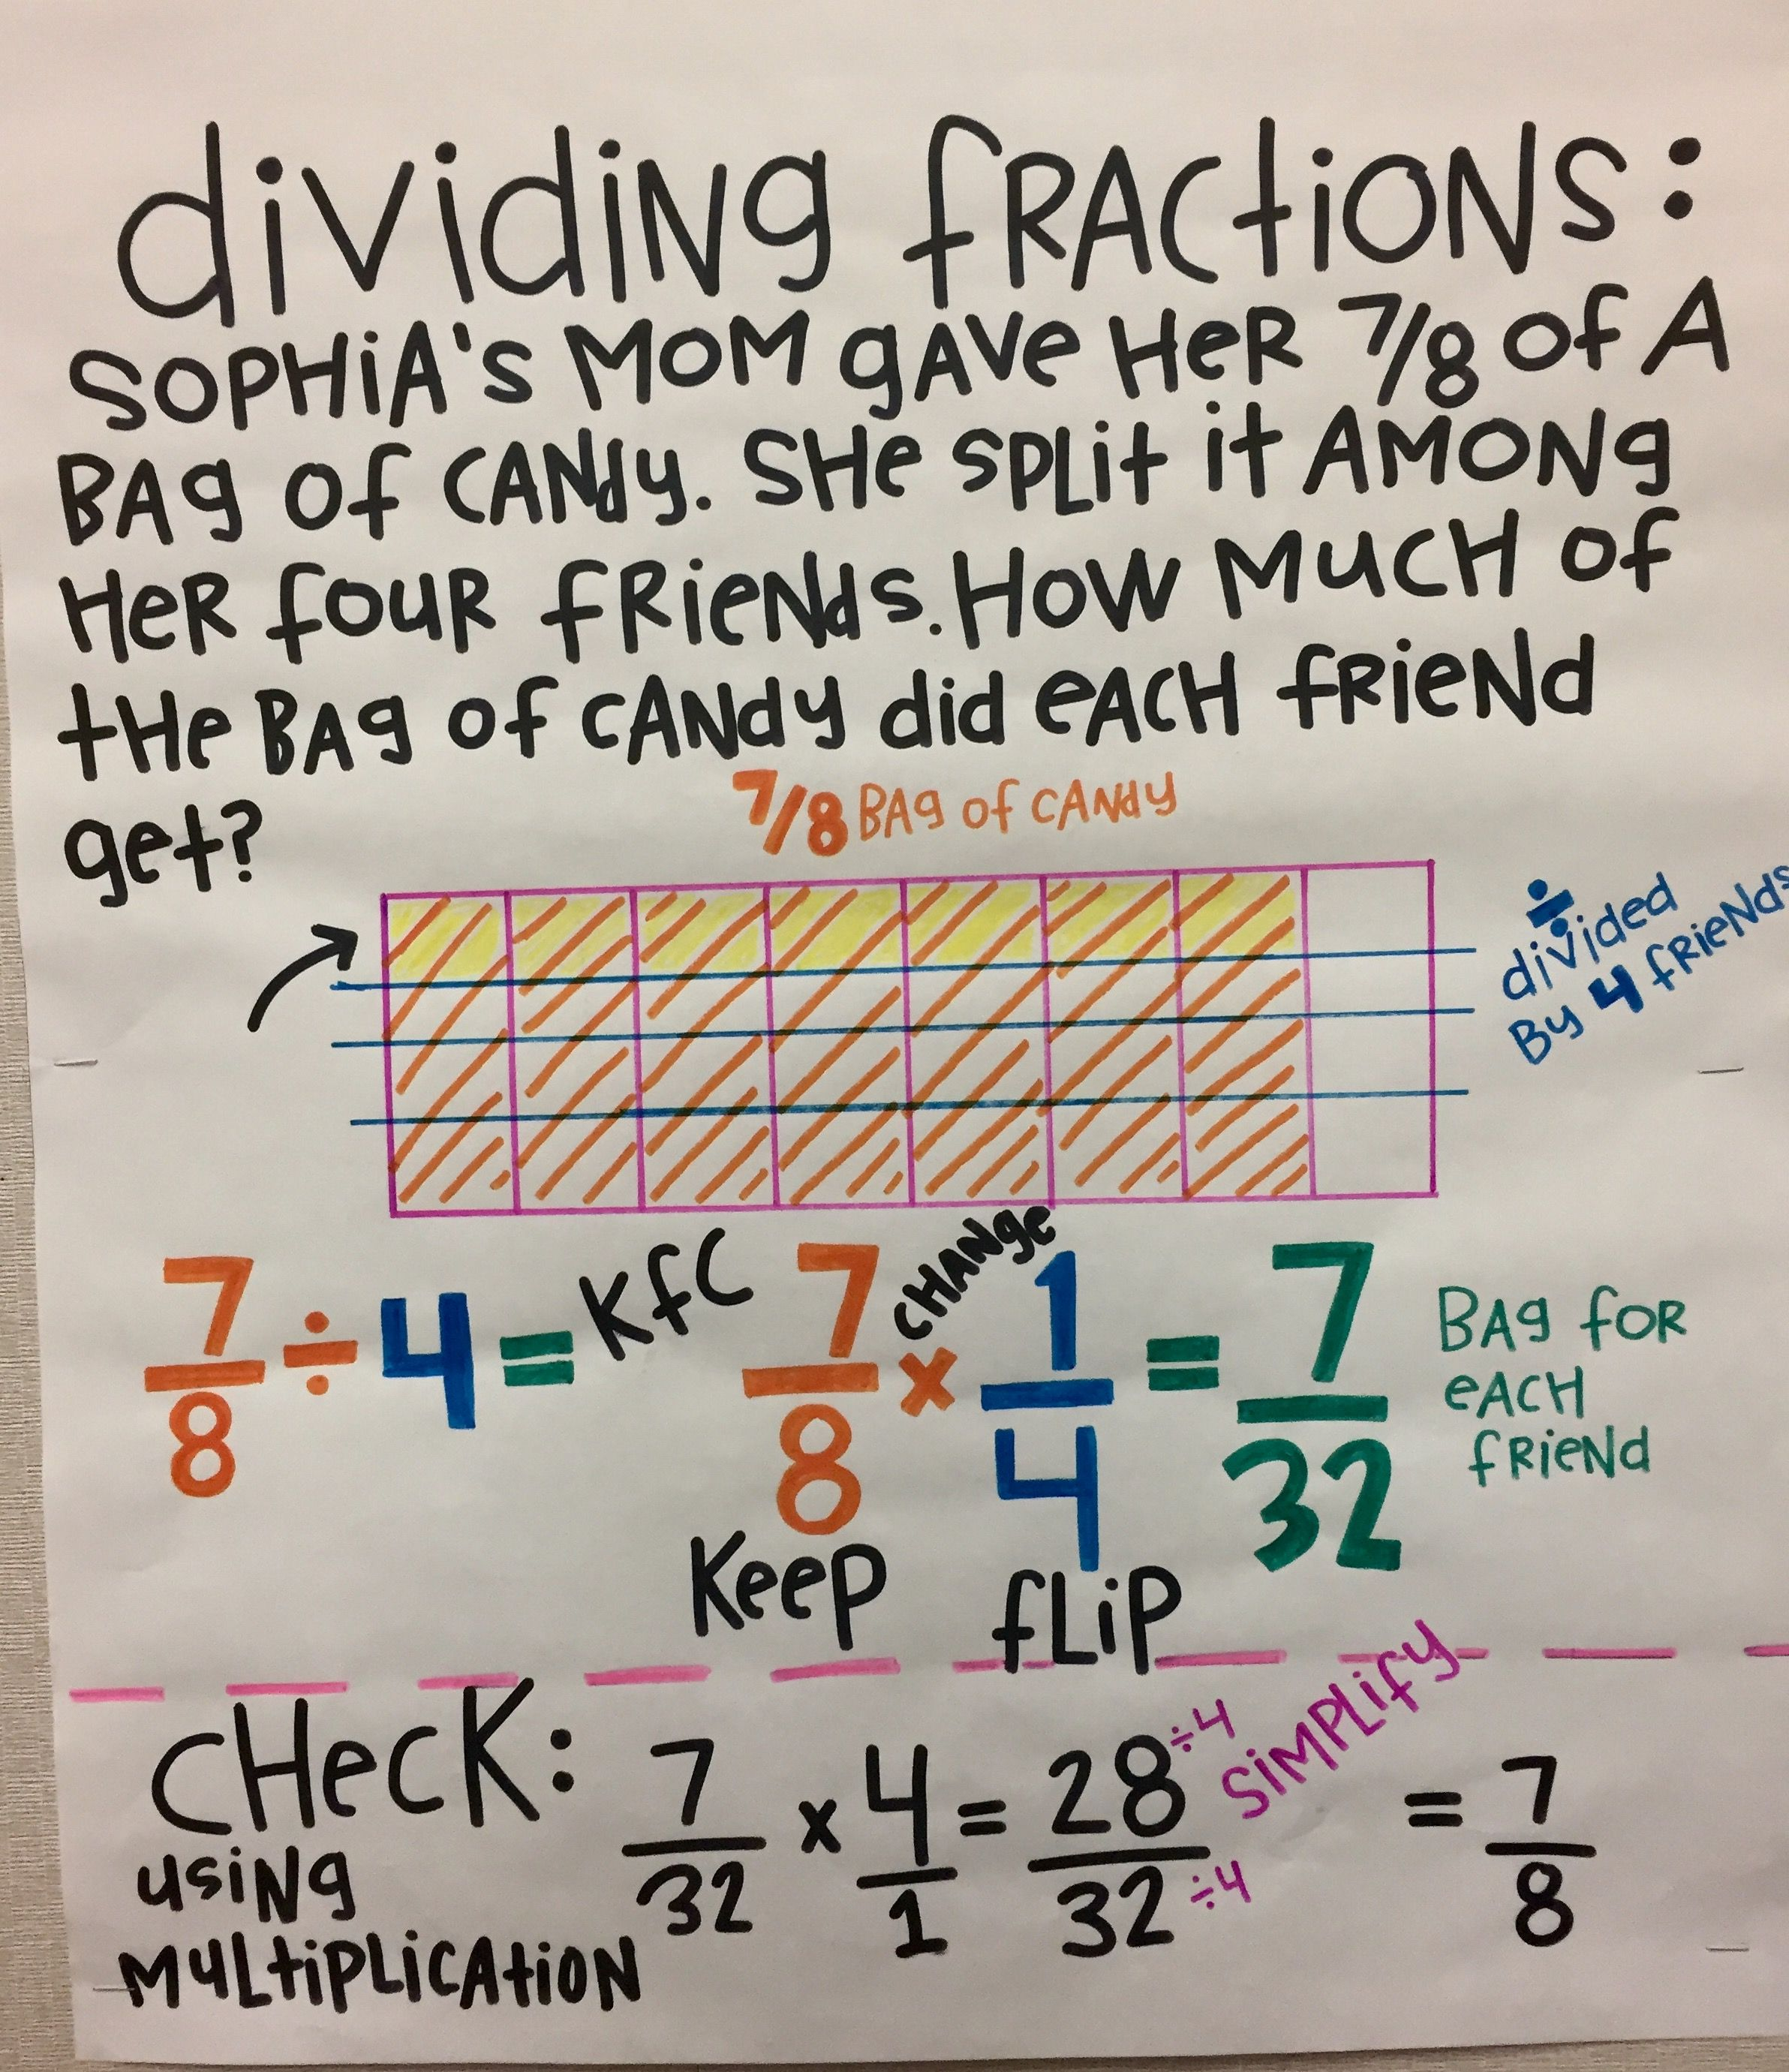 Dividing Fractions Word Problem Fifth Grade Common Core Anchor Chart With Keep Flip Change And Tape Diag Fraction Word Problems Word Problems Fifth Grade Math